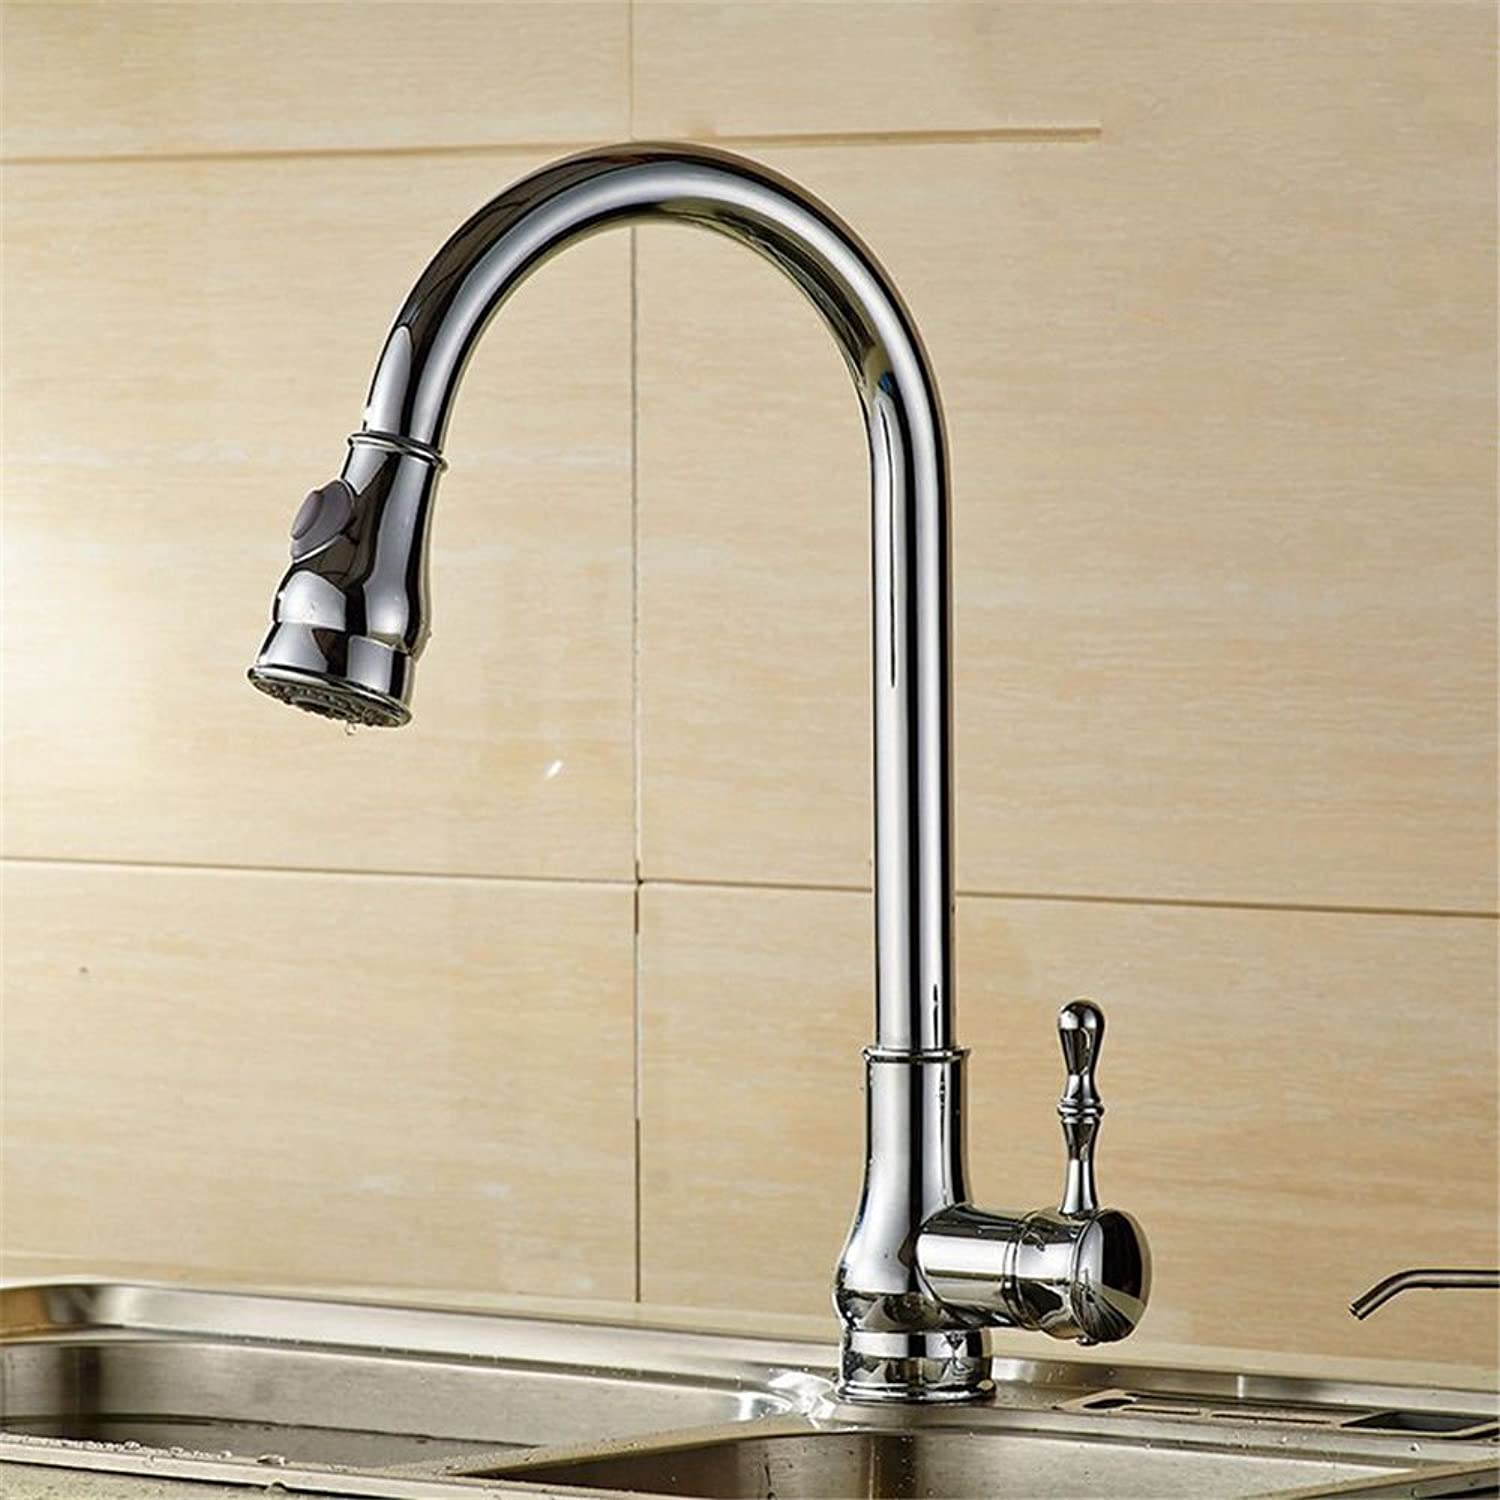 ETERNAL QUALITY Bathroom Sink Basin Tap Brass Mixer Tap Washroom Mixer Faucet The copper kitchen faucet hot and cold water mixing valve pull the tap to redate the telesco